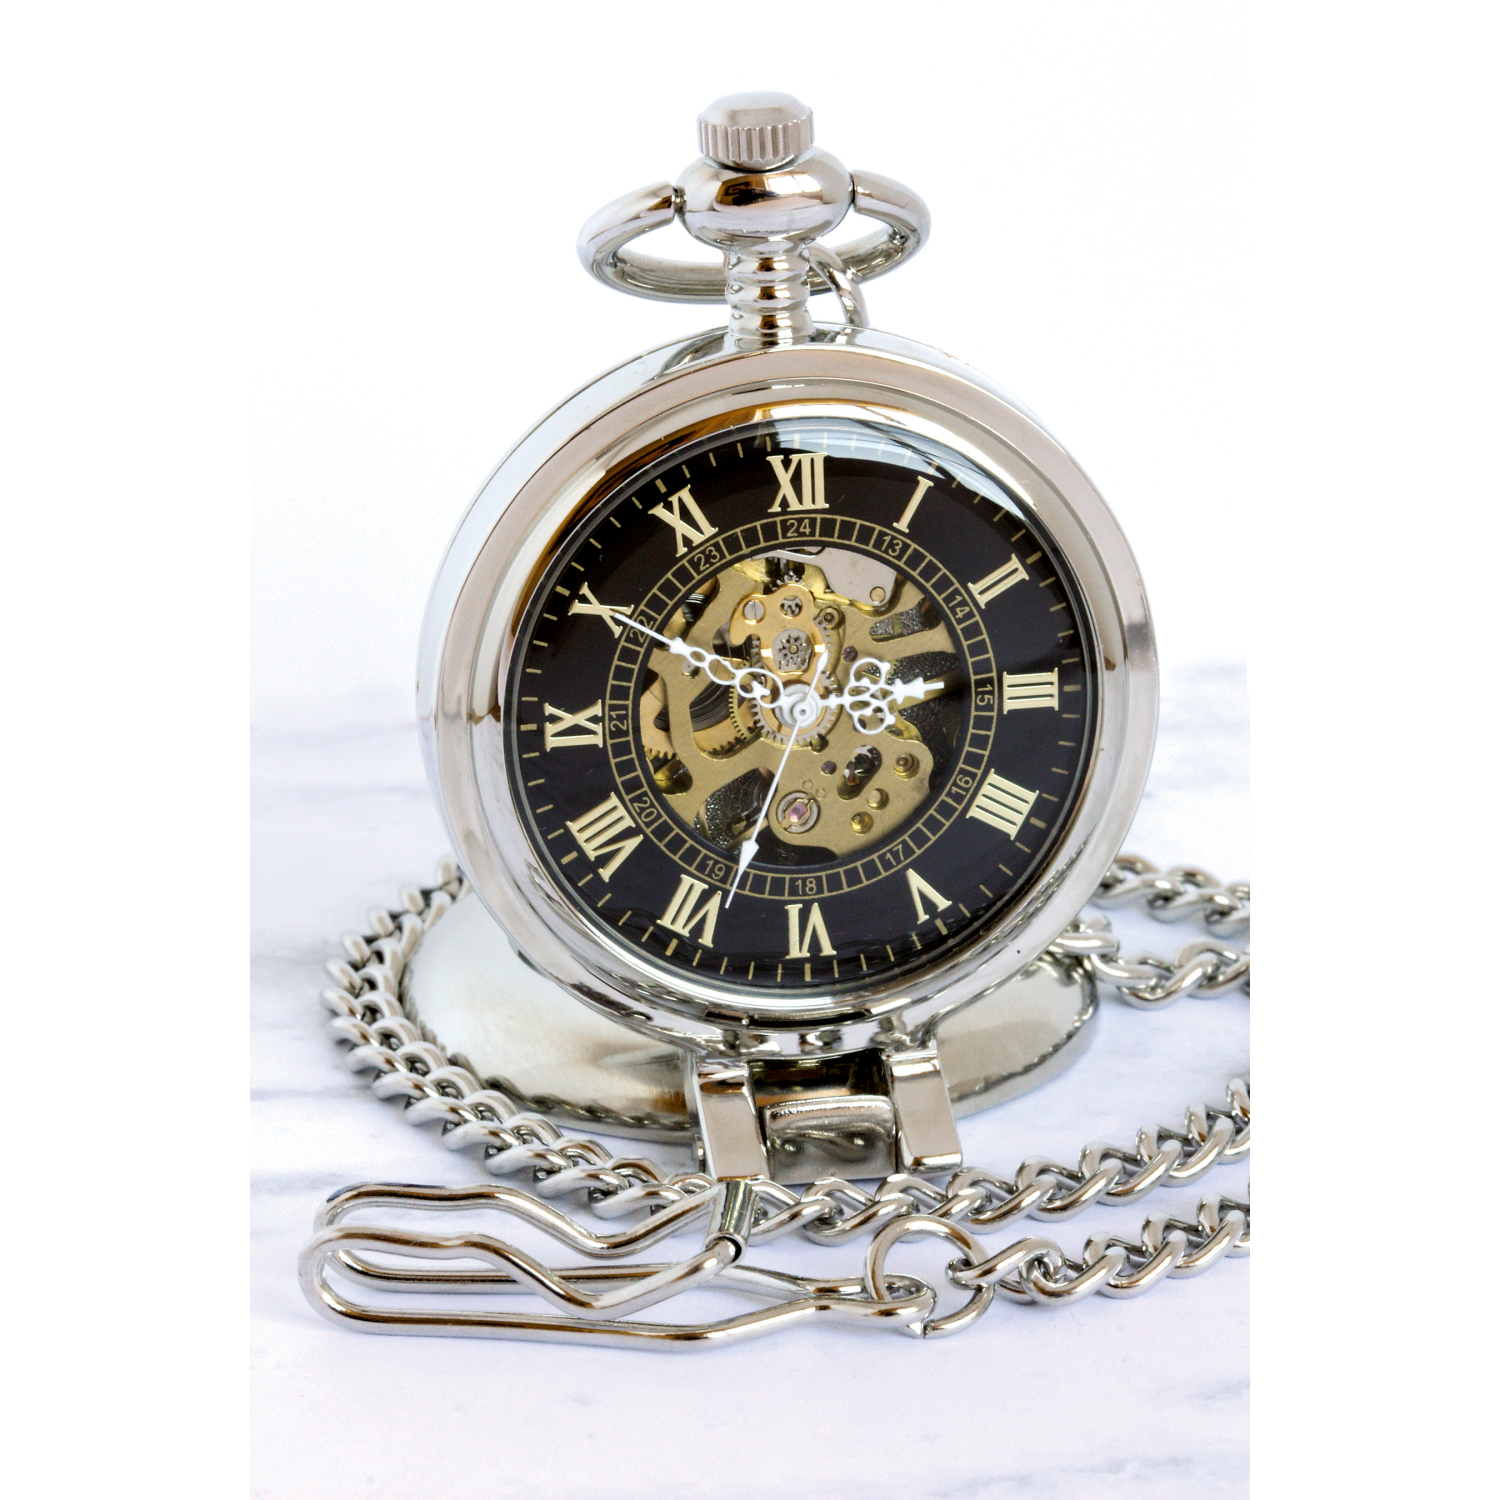 Gold-Layered Silver Walking Liberty Half Dollar Coin Pocket Watch With Skeleton Movement - Black Dial With Gold Roman Numerals